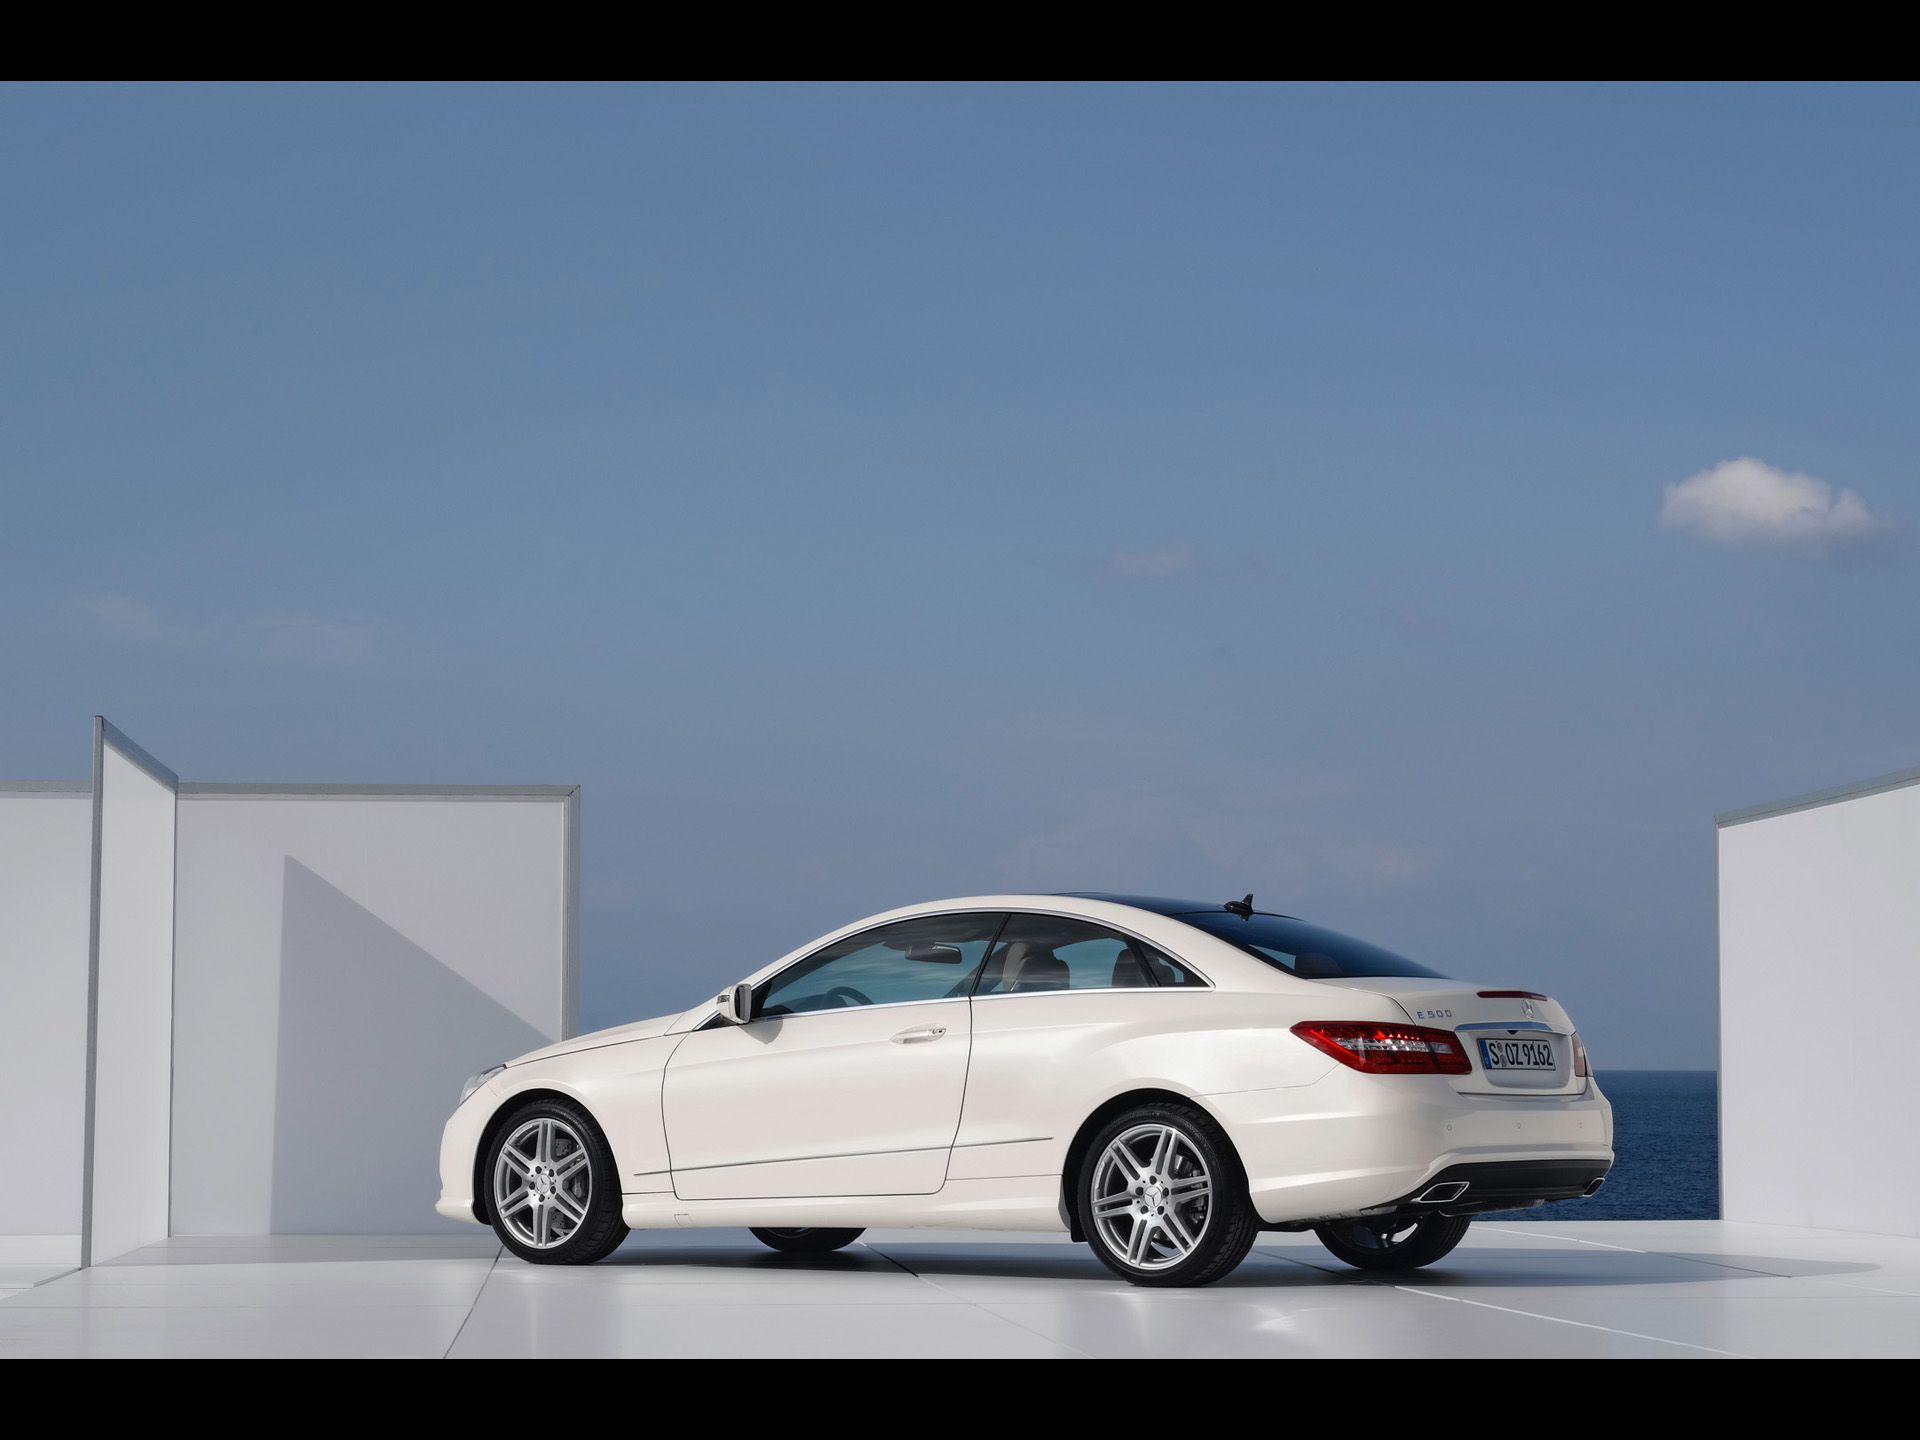 2010 Mercedes-Benz E-Class Coupe - First Look - Motor Trend